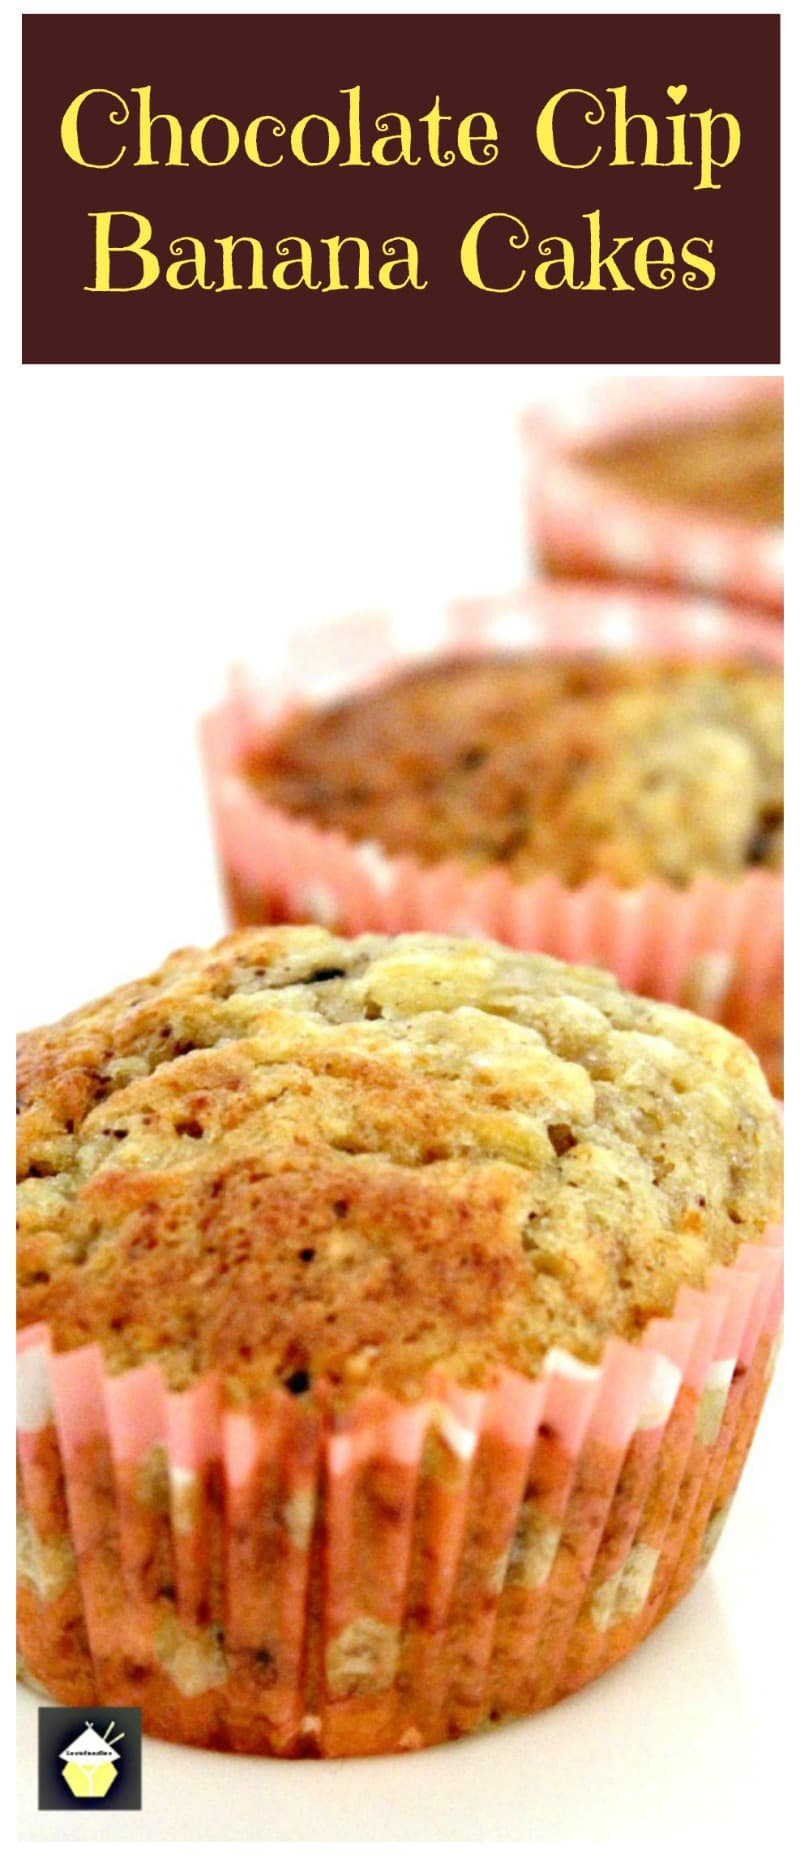 Chocolate Chip & Banana Cakes. A very easy and so delicious recipe. A sure 'keeper'!